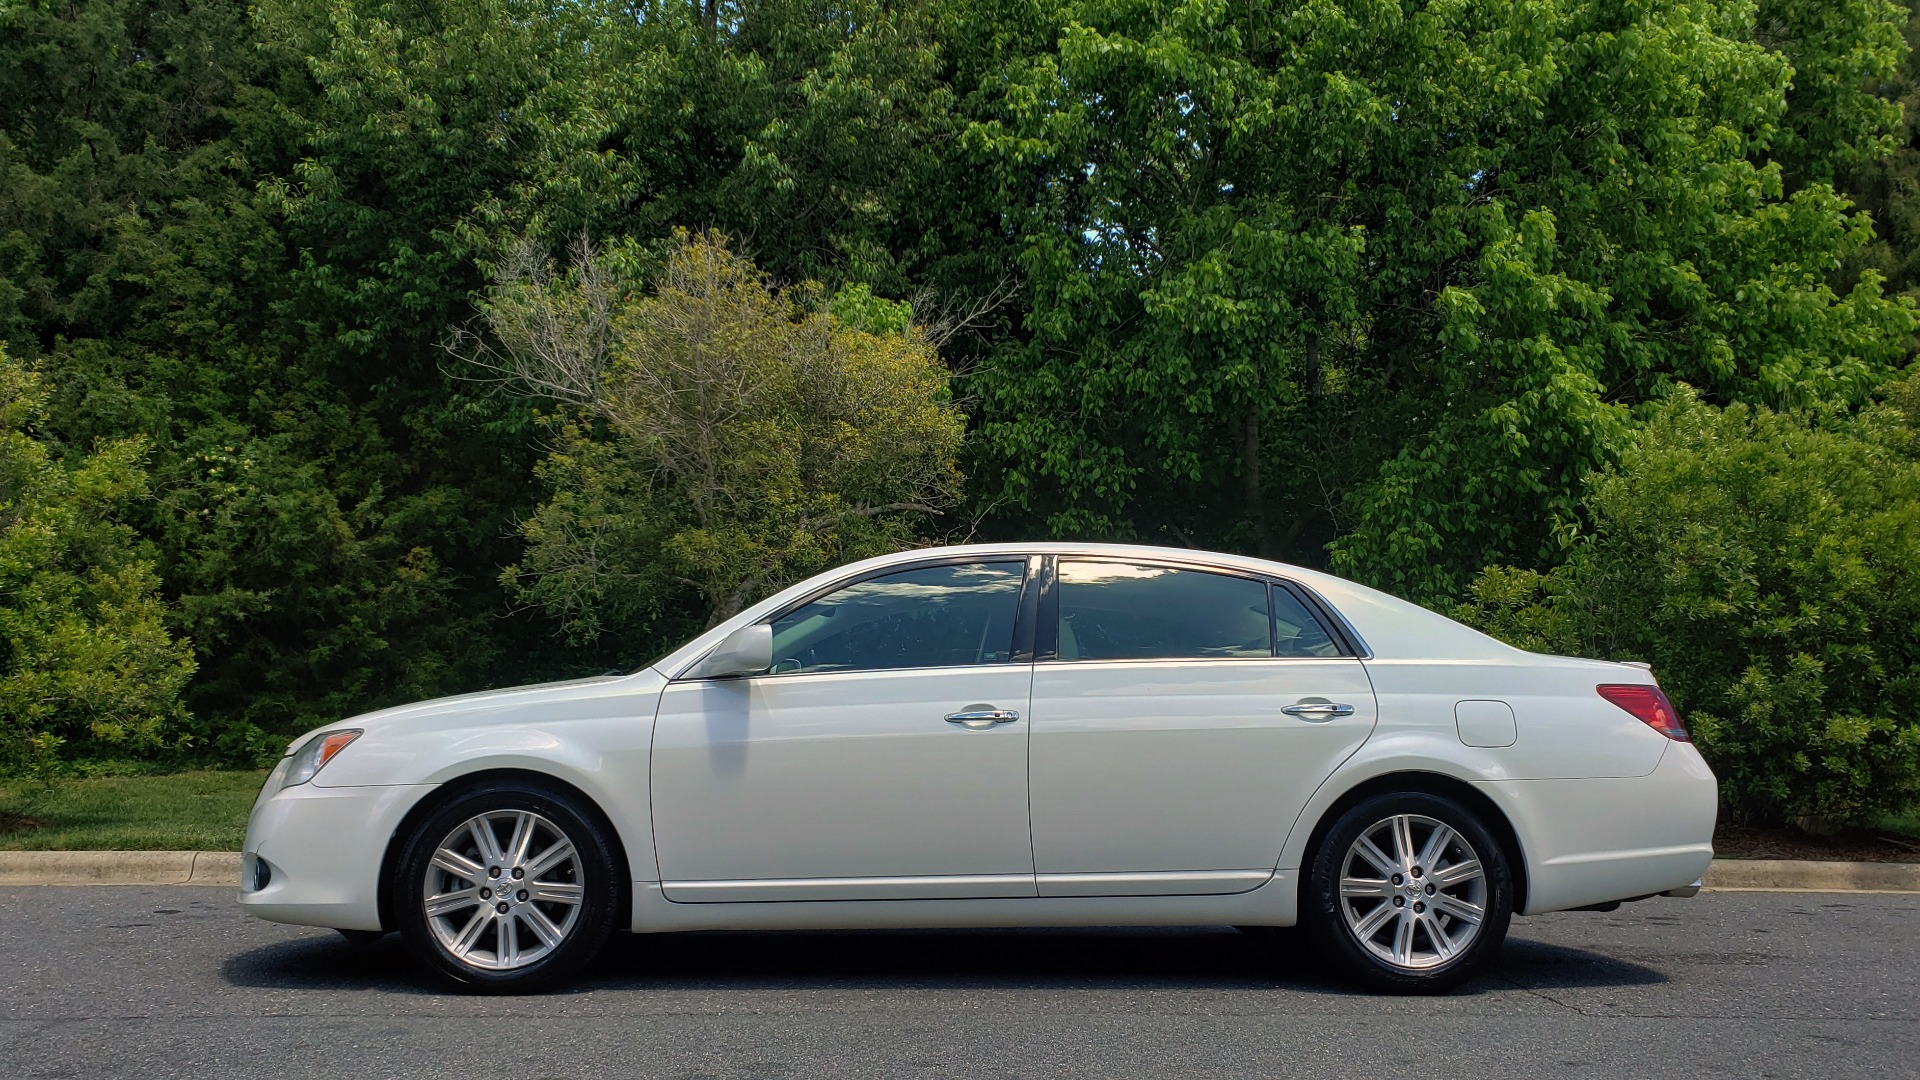 Used 2008 Toyota AVALON LIMITED V6 / FWD / SUNROOF / DYN RADAR CRUISE / BRAKE ASST for sale Sold at Formula Imports in Charlotte NC 28227 2